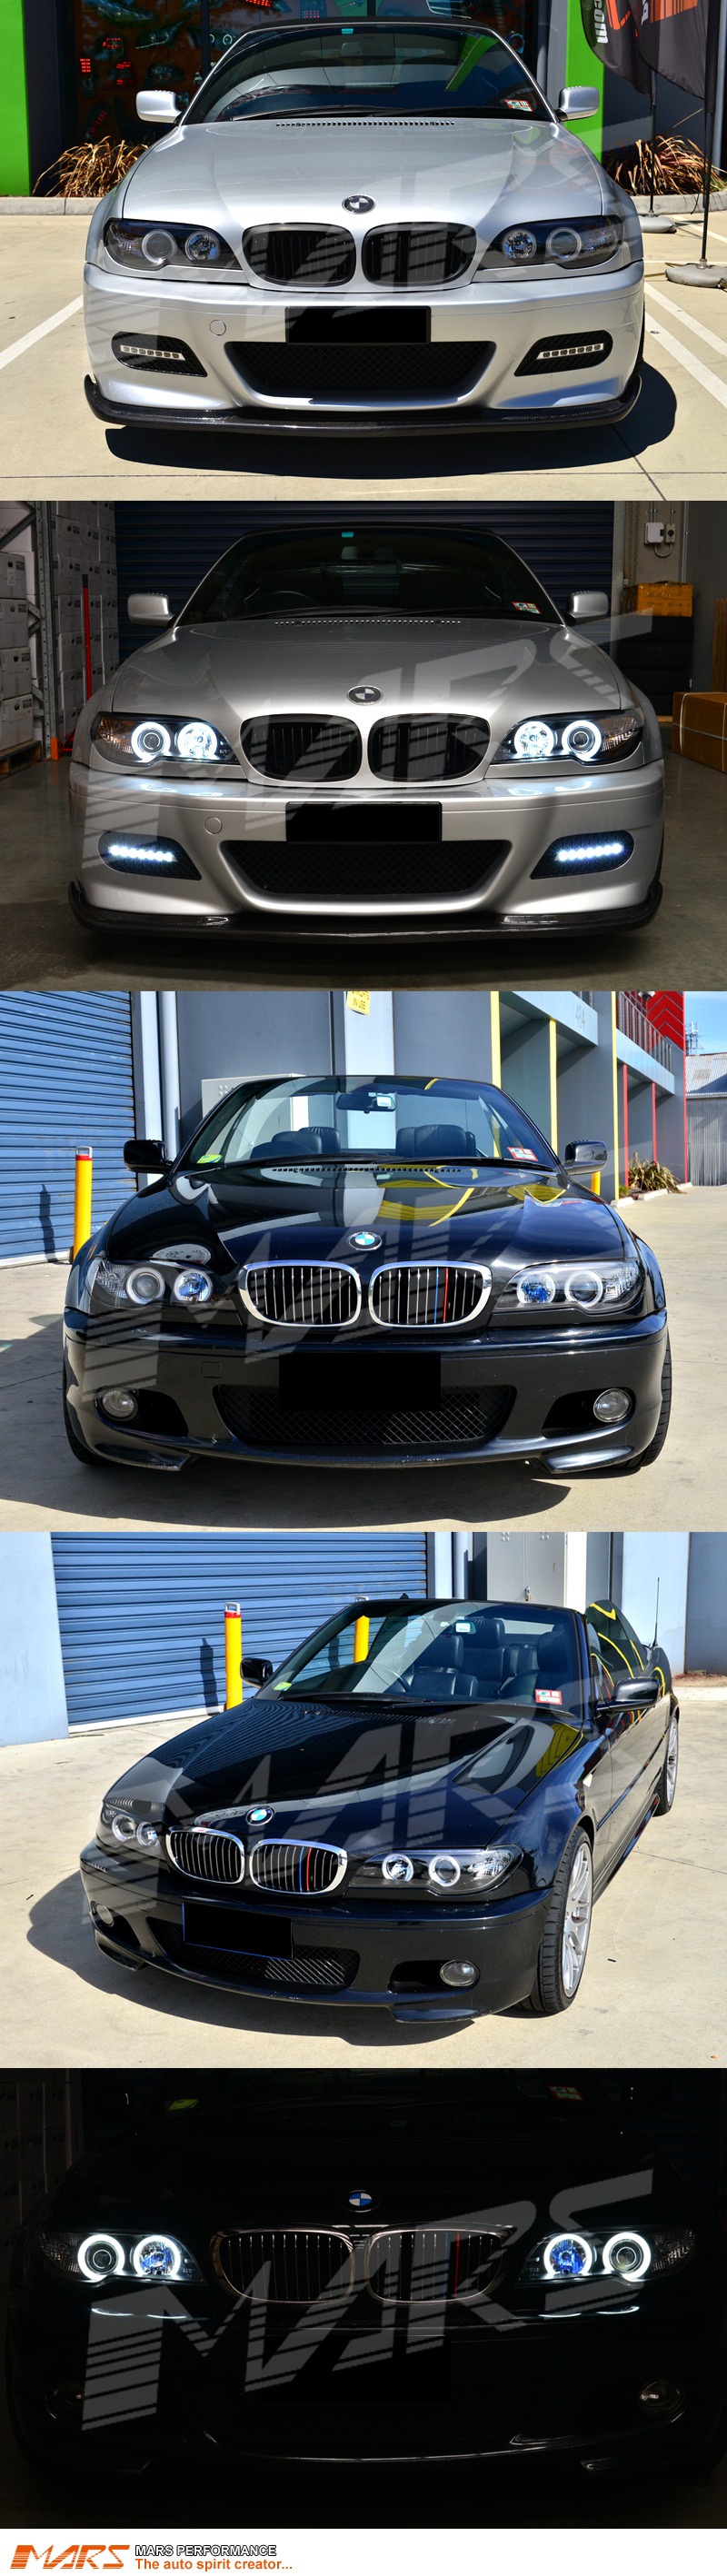 Black Ccfl Angel Eyes Projector Head Lights For Bmw 3 Series E46 2d Lci Coupe Convertible 03 05 Factory Hid Model Mars Performance